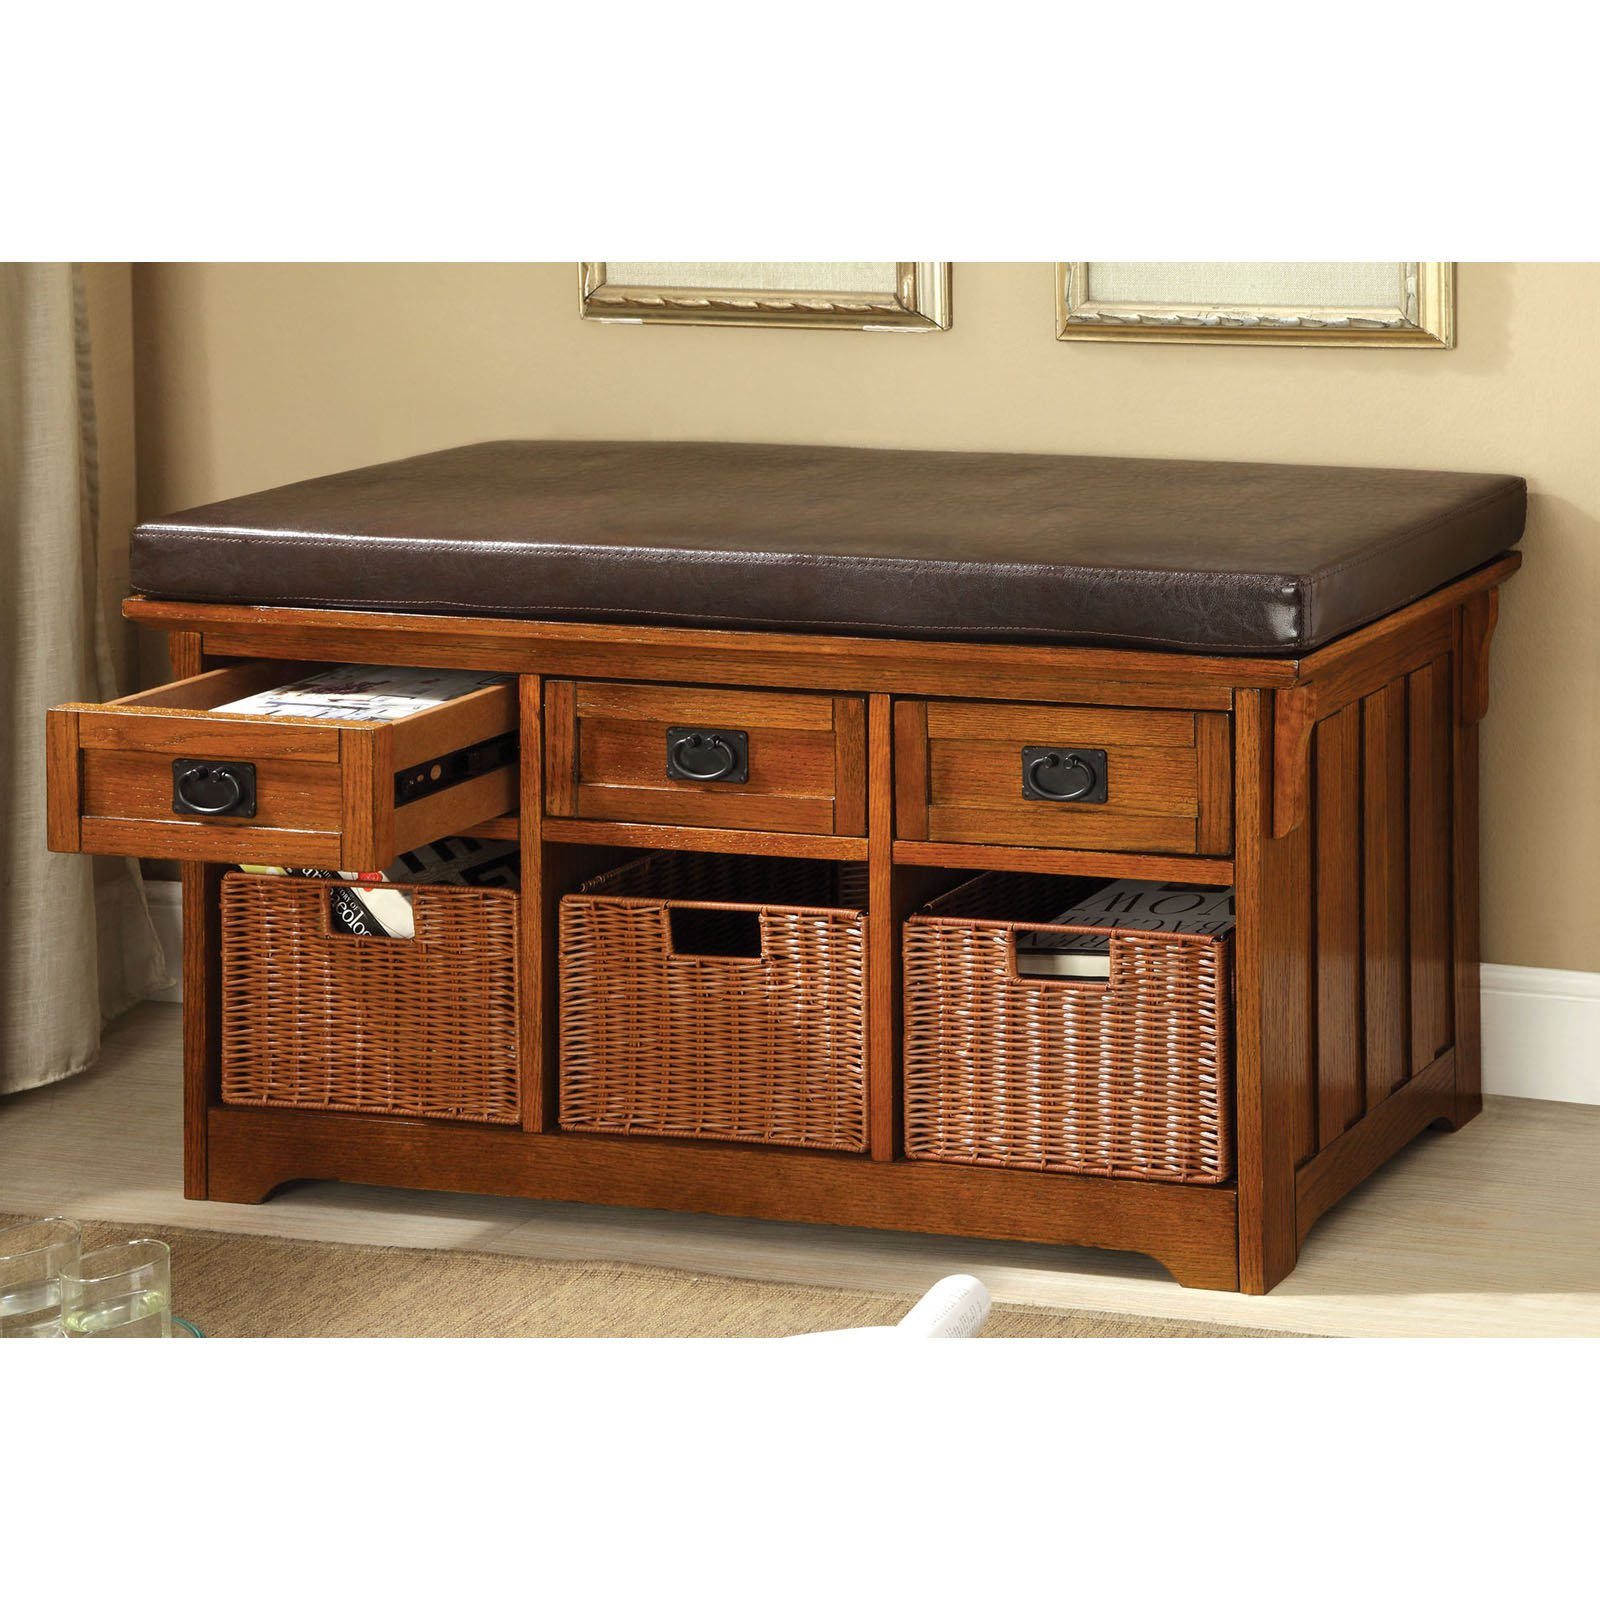 Charmant Furniture Of America Doreen Padded Leatherette Bench With Storage Baskets    Antique Oak